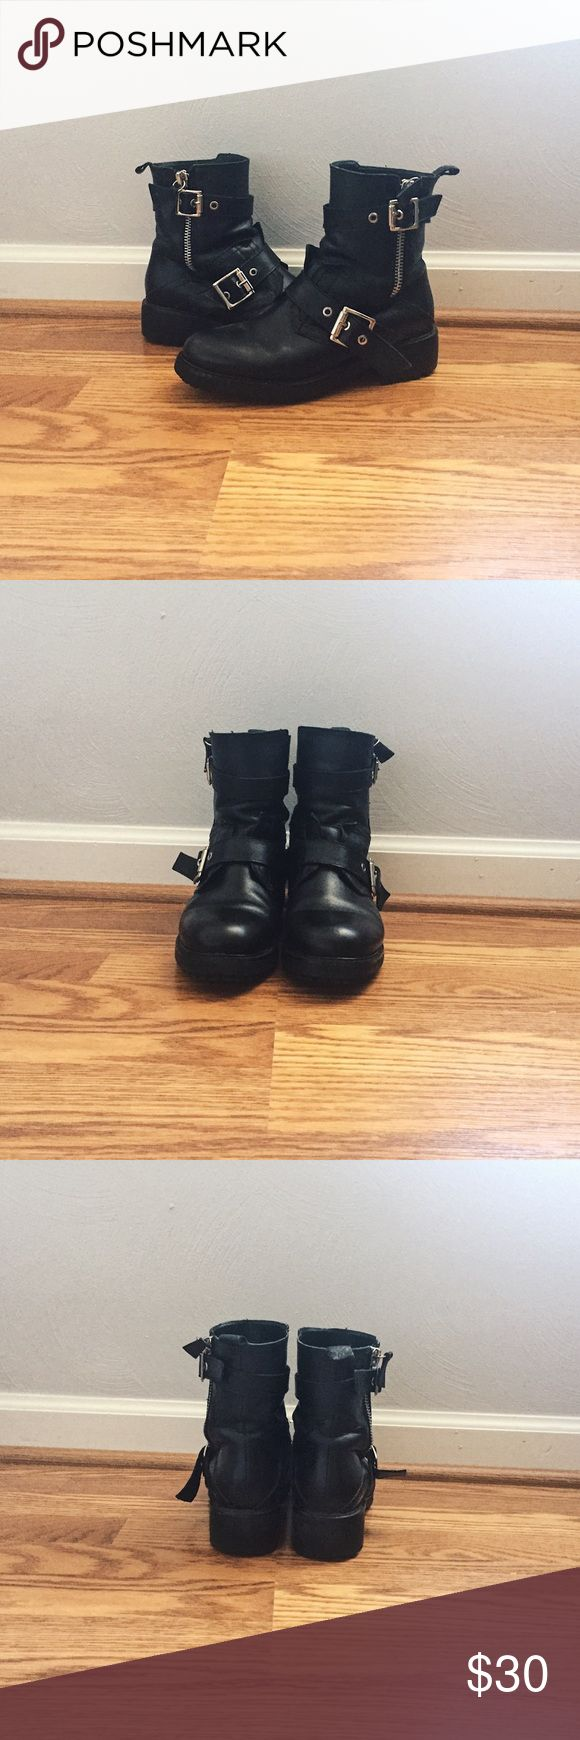 🆕 Zara genuine leather buckled biker moto boots Genuine leather. Marked women's European size 37,  so fits like US size 6.5. I wear a US women's size 6.5 in shoe brands like Vans, Nike, Converse, Timberland, & size US 6 in Doc Martens for reference. They